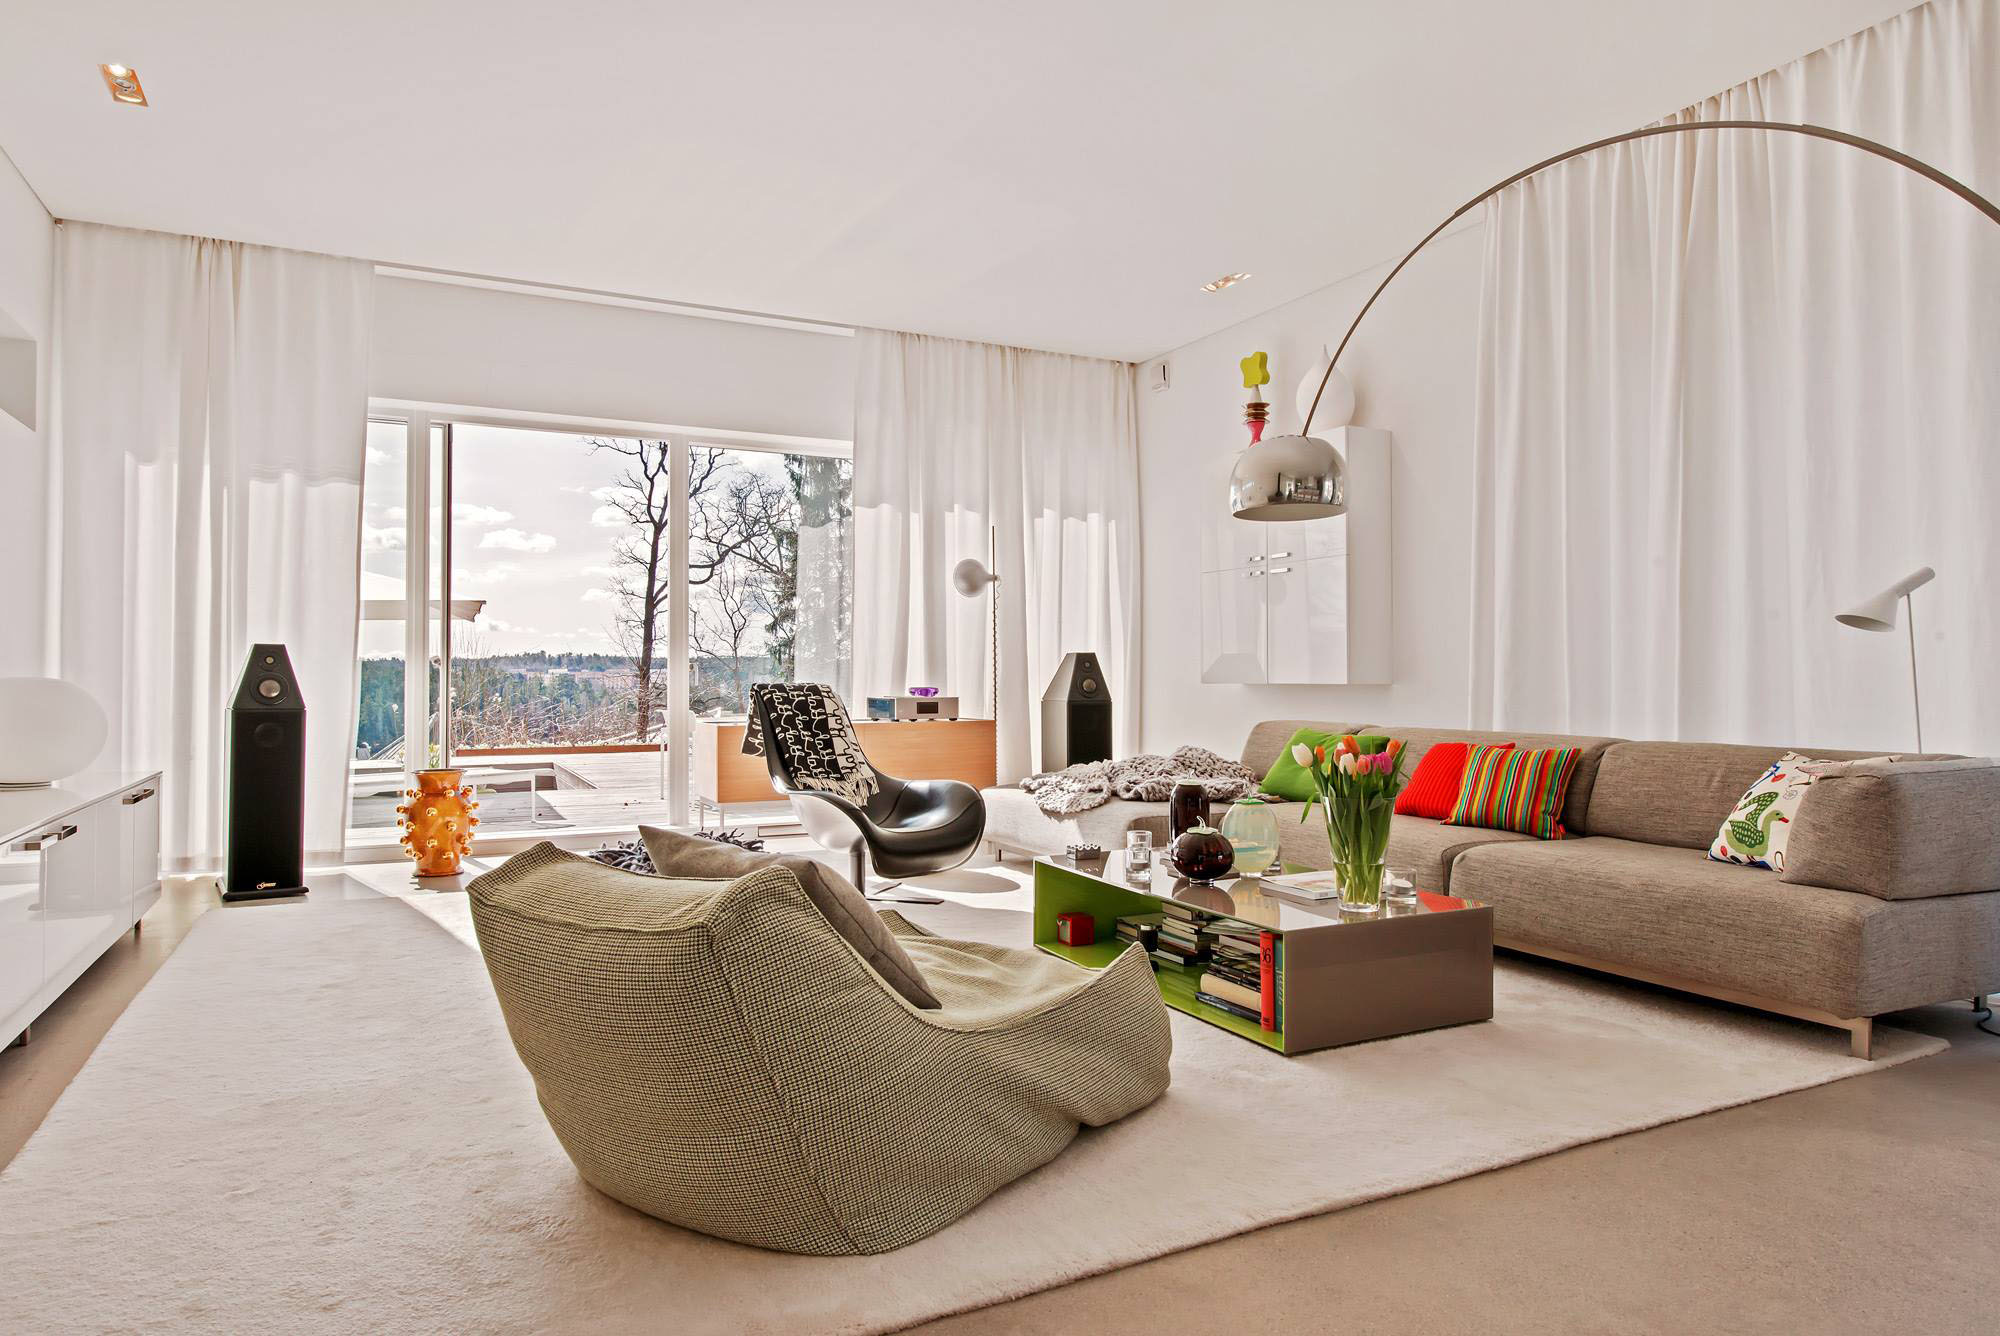 Lounge Couch Company Incredible Modern Villa Design The Villa In Stockholm